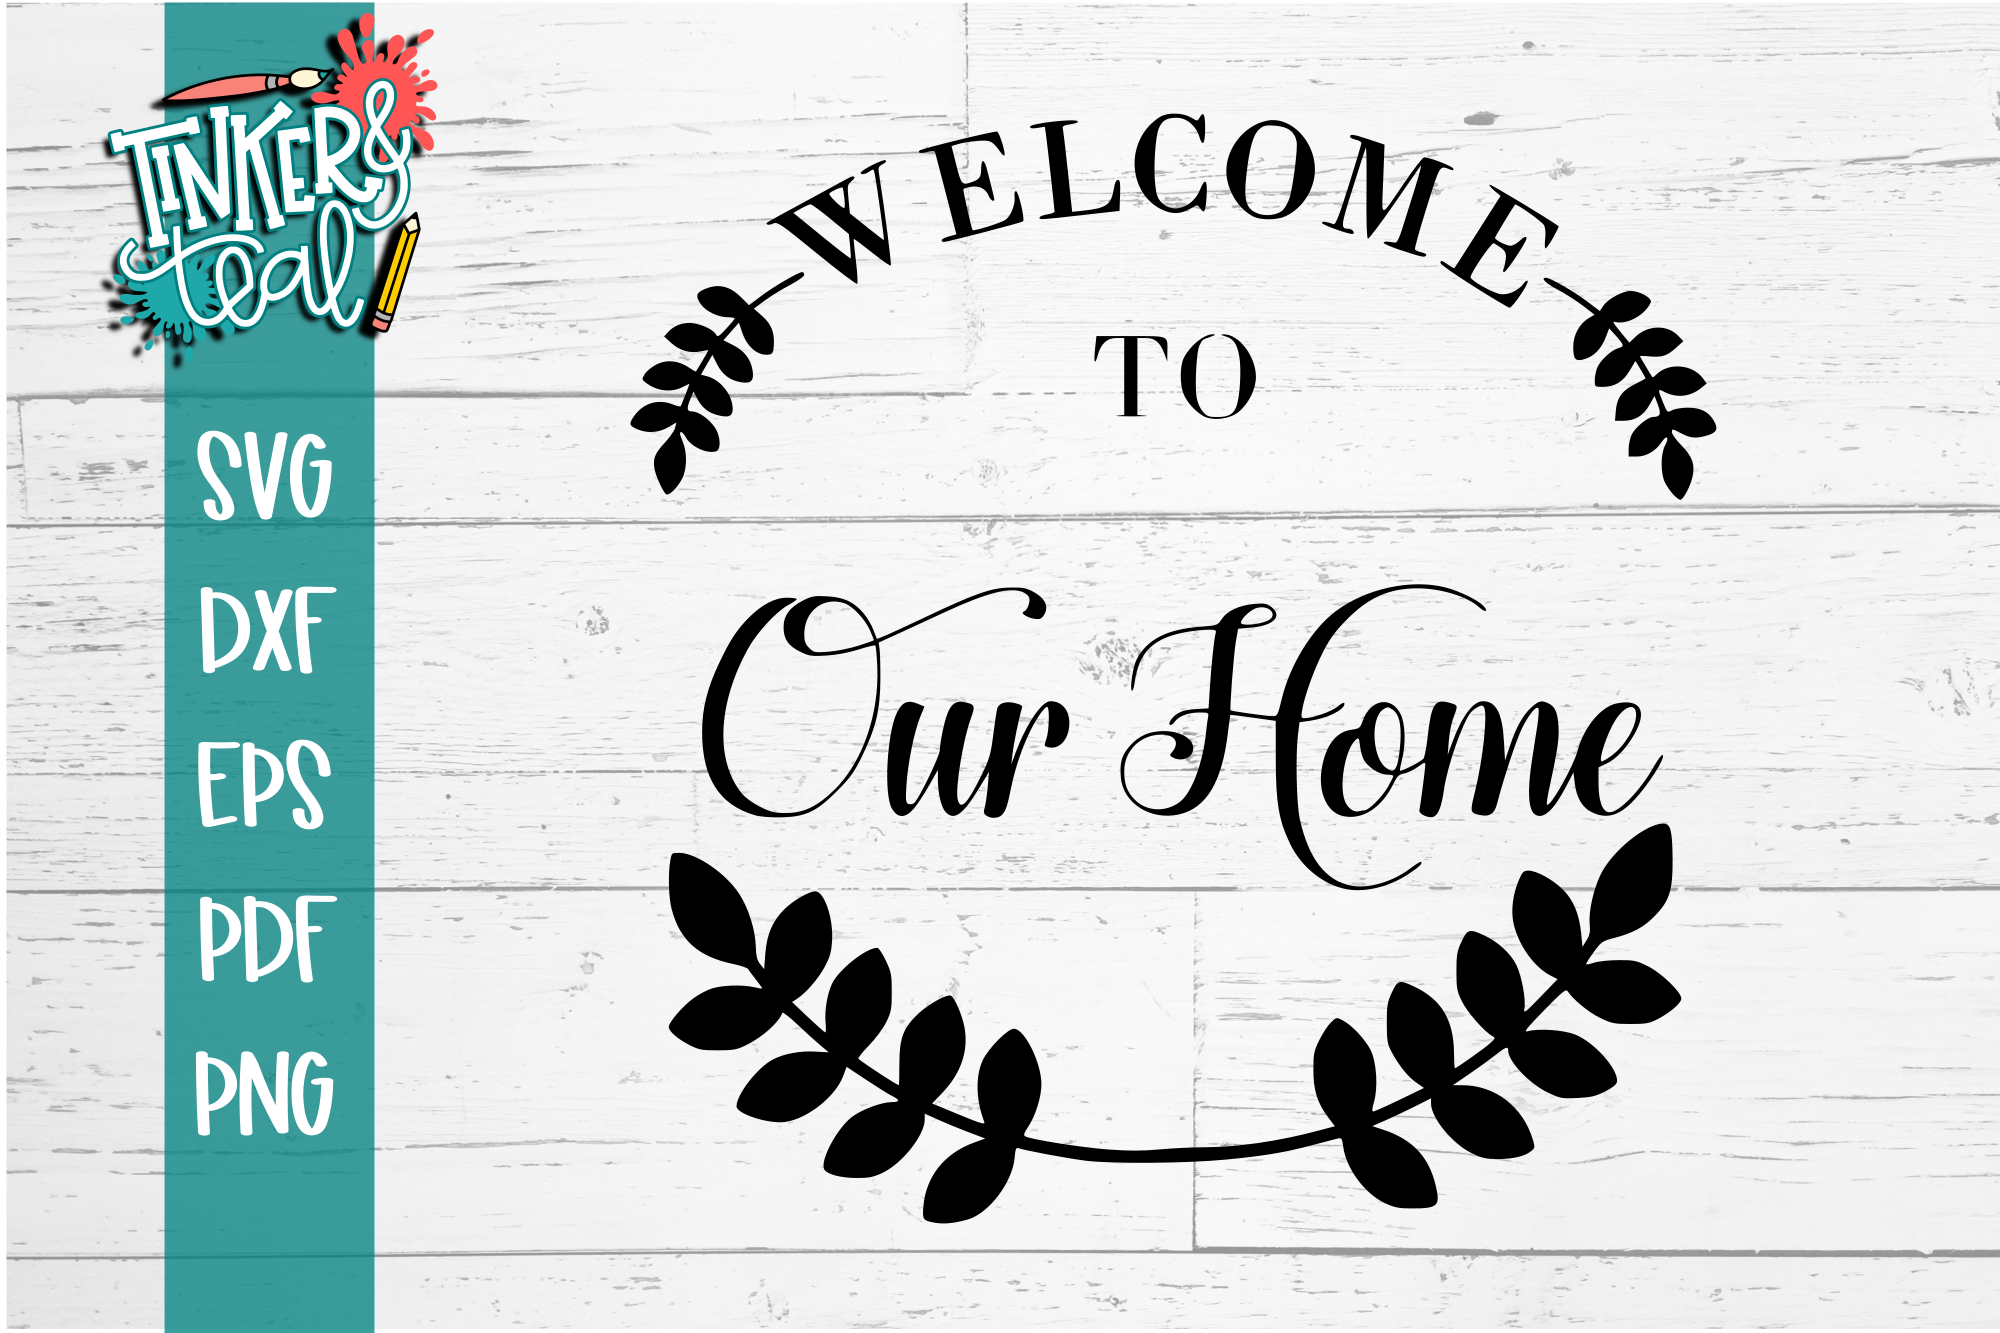 Farmhouse Welcome To Our Home Laurel SVG example image 2